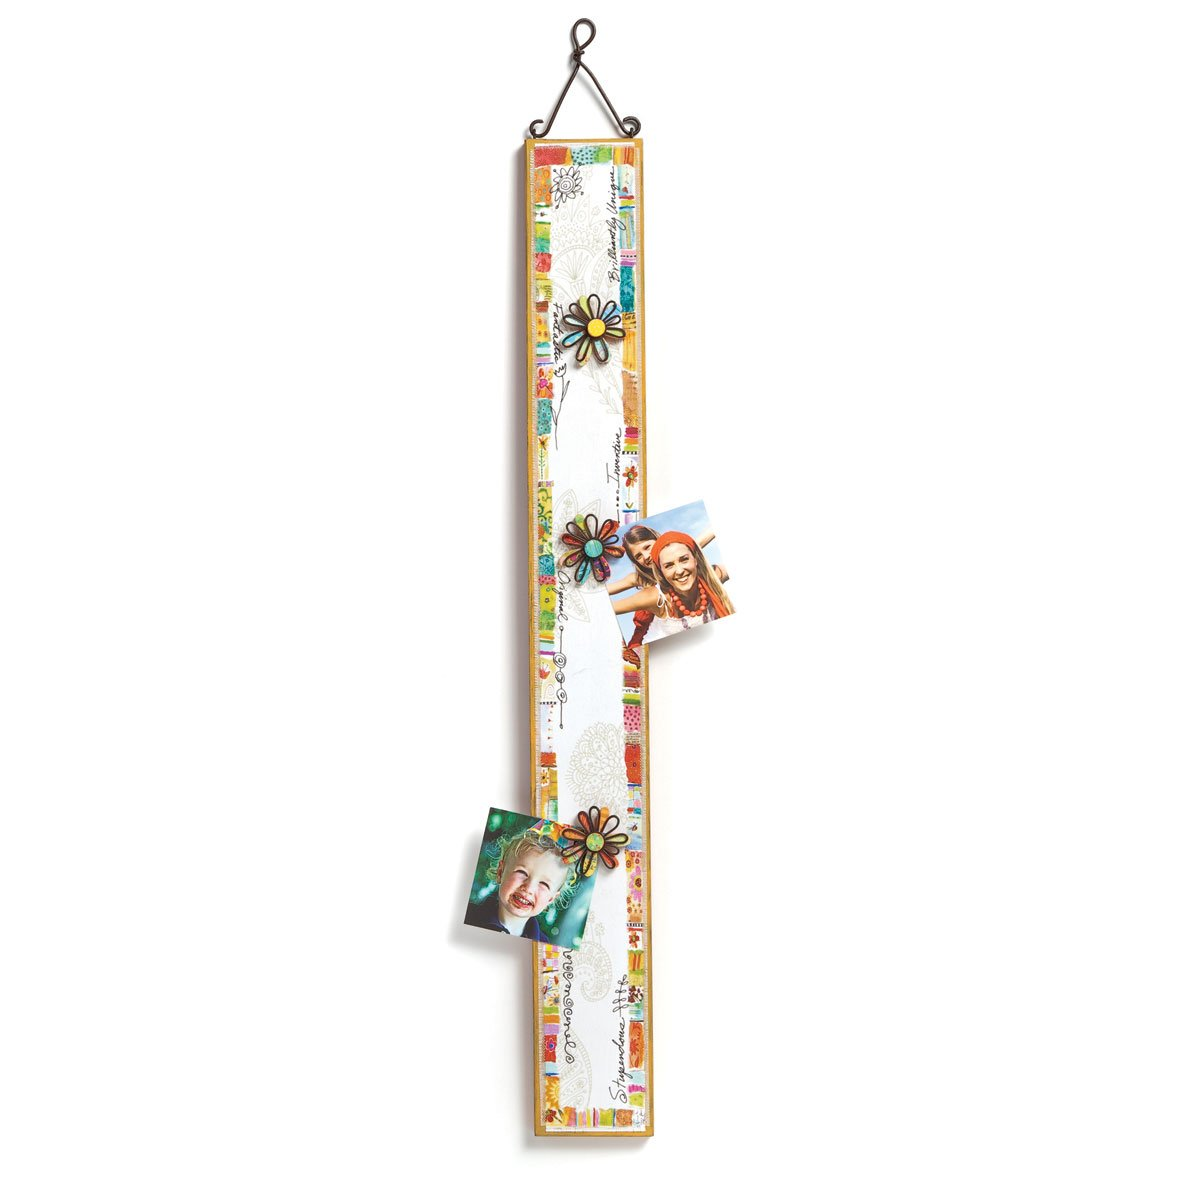 DEMDACO Wonderfully Quirky Photo Strip with Magnets, 3 by 25-Inch